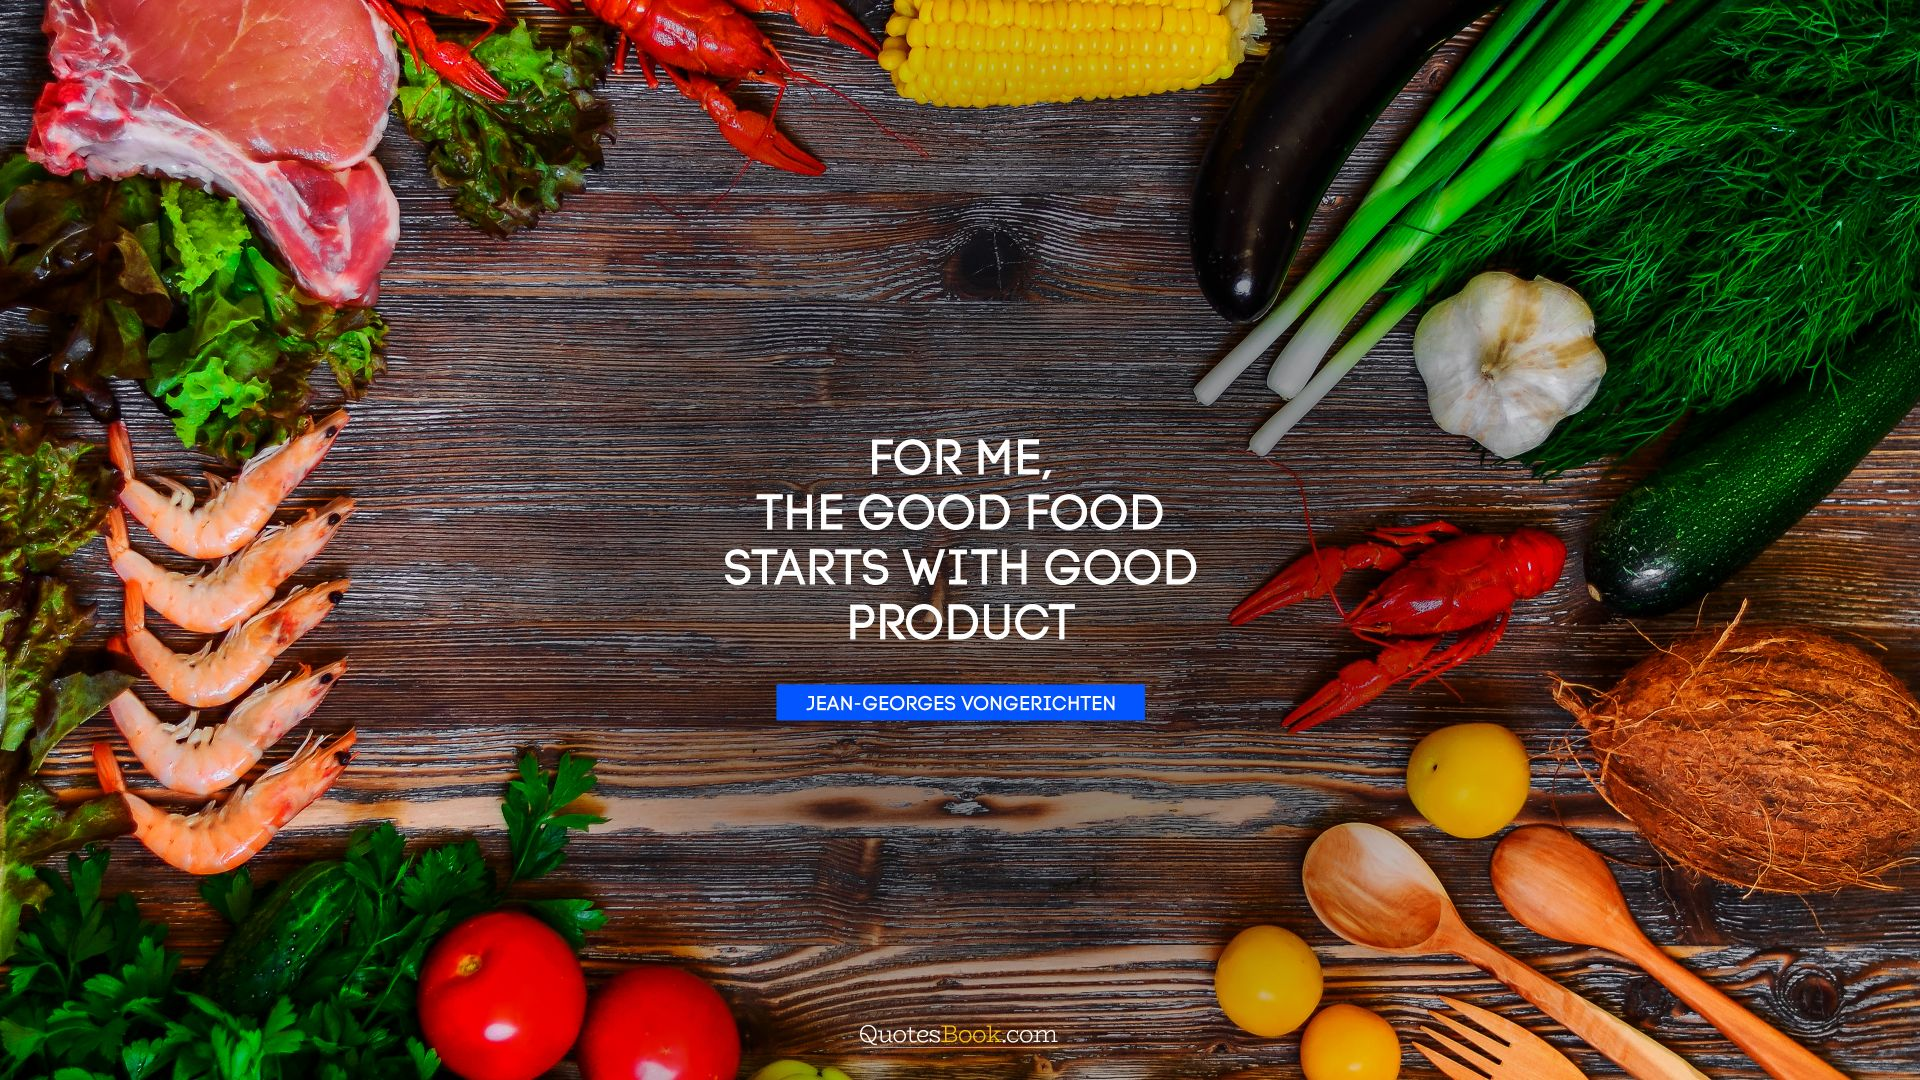 For me, the good food starts with good product. - Quote by Jean-Georges Vongerichten